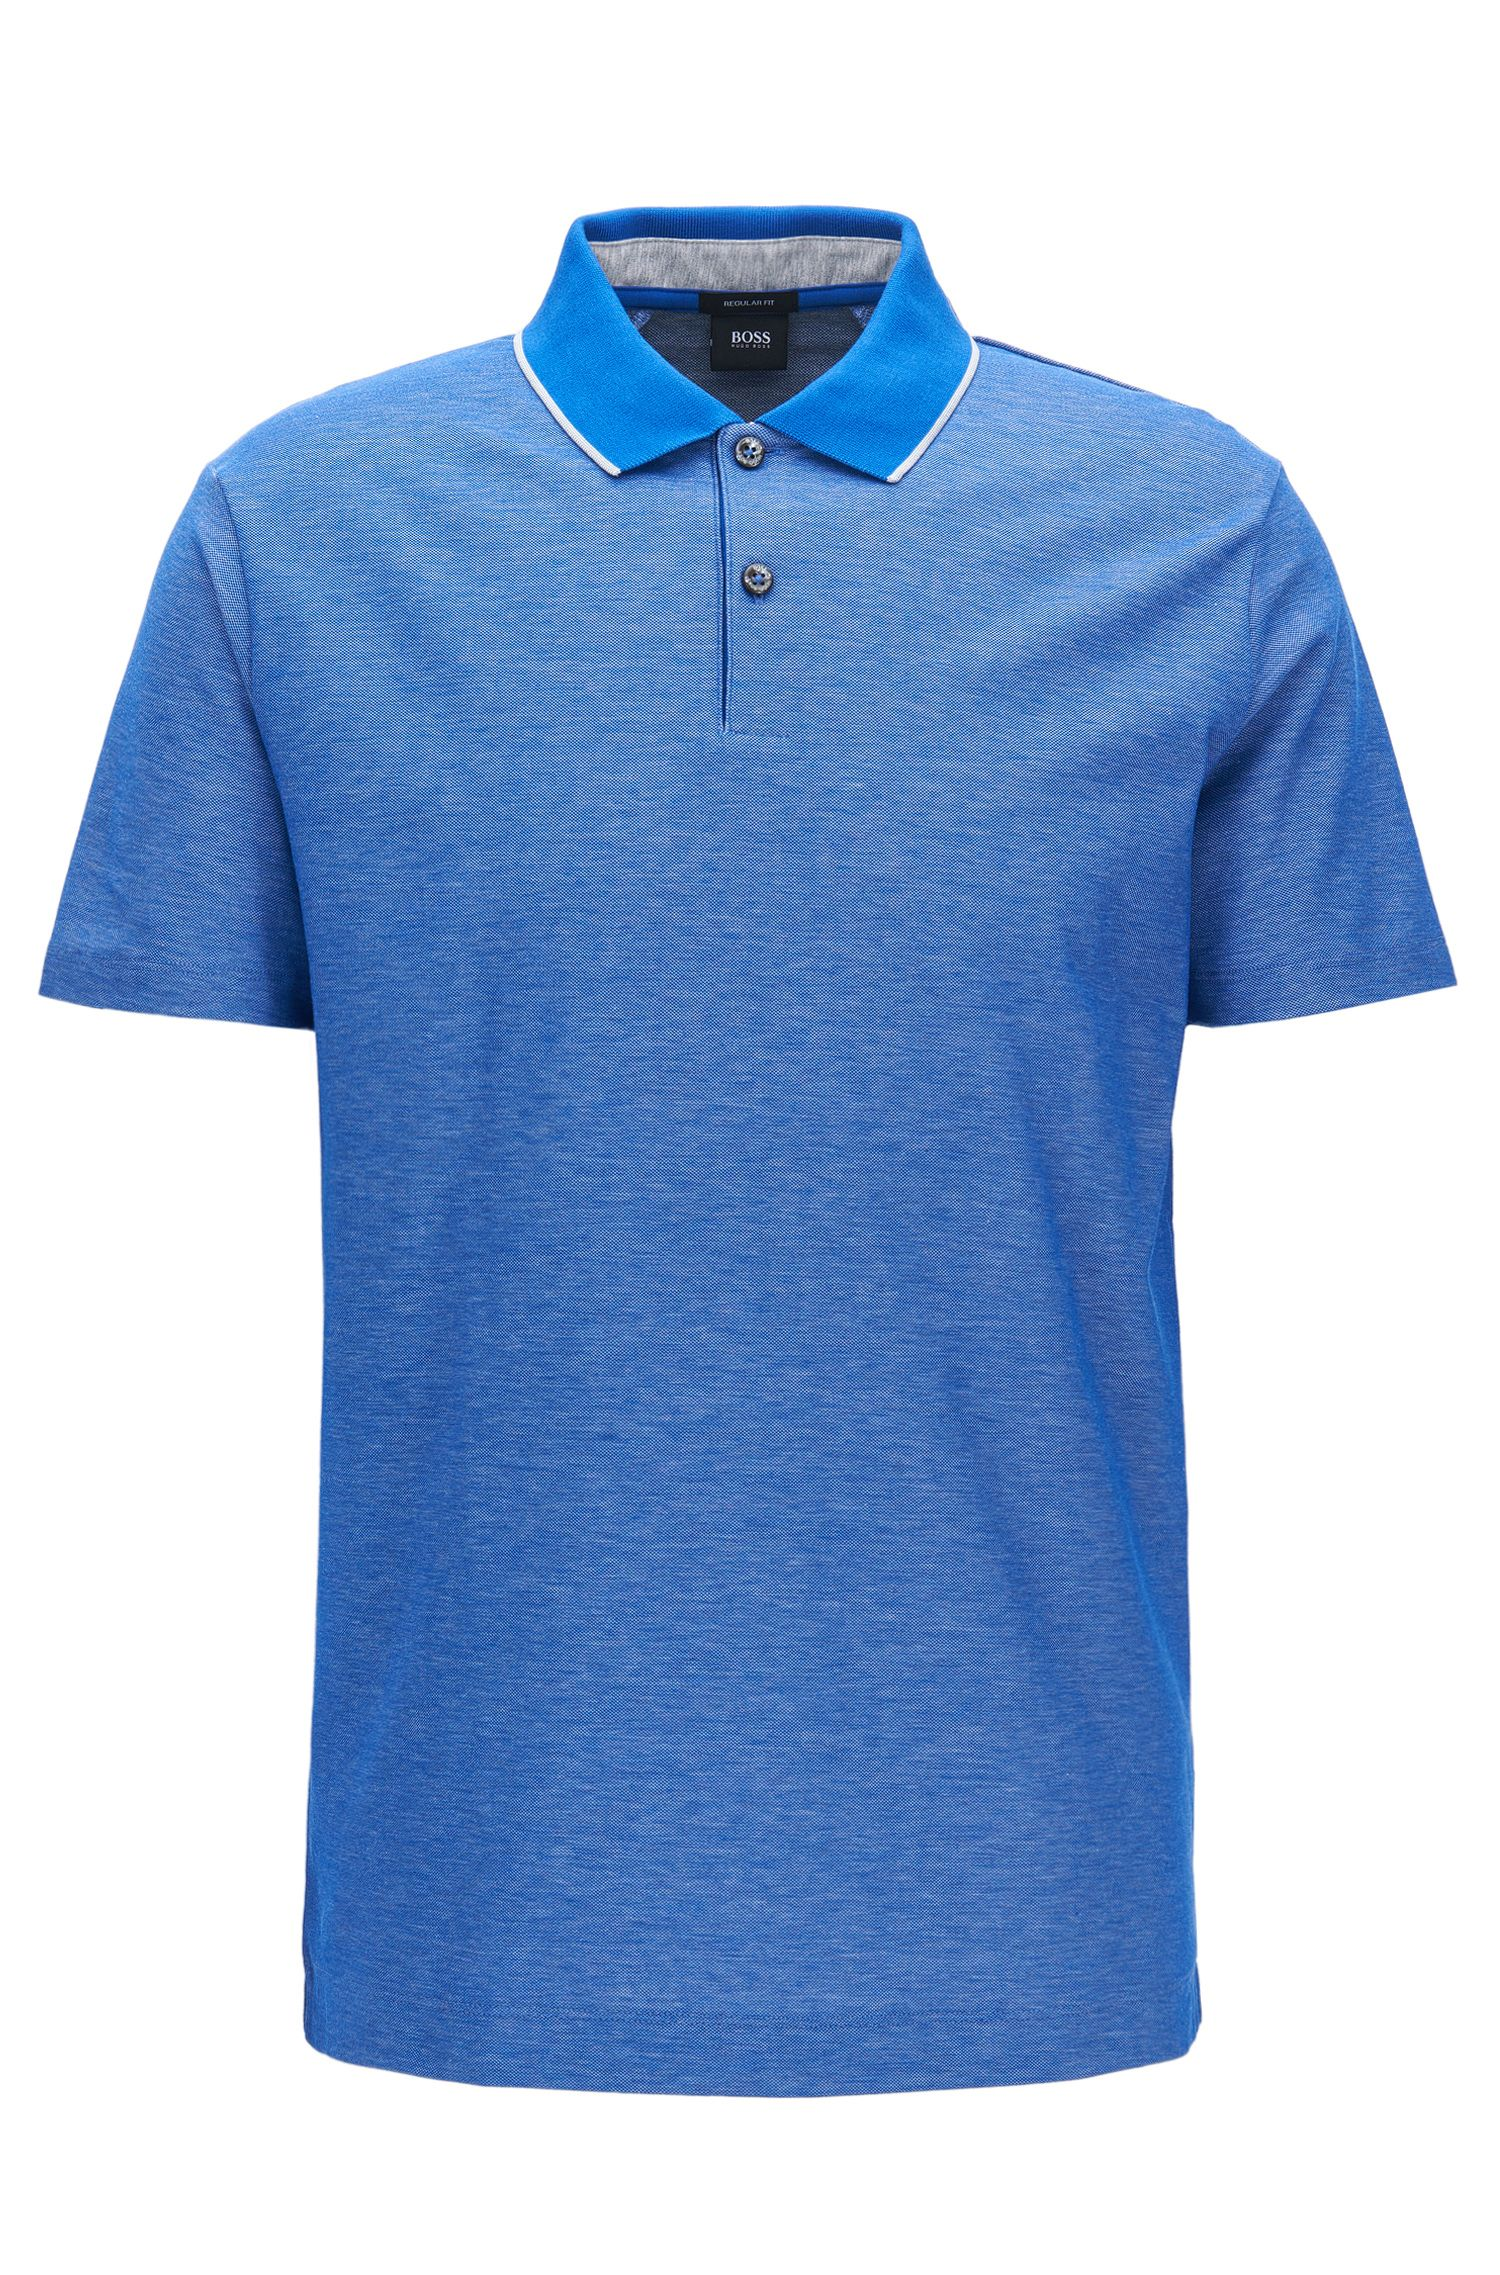 Regular-Fit Poloshirt aus Baumwolle